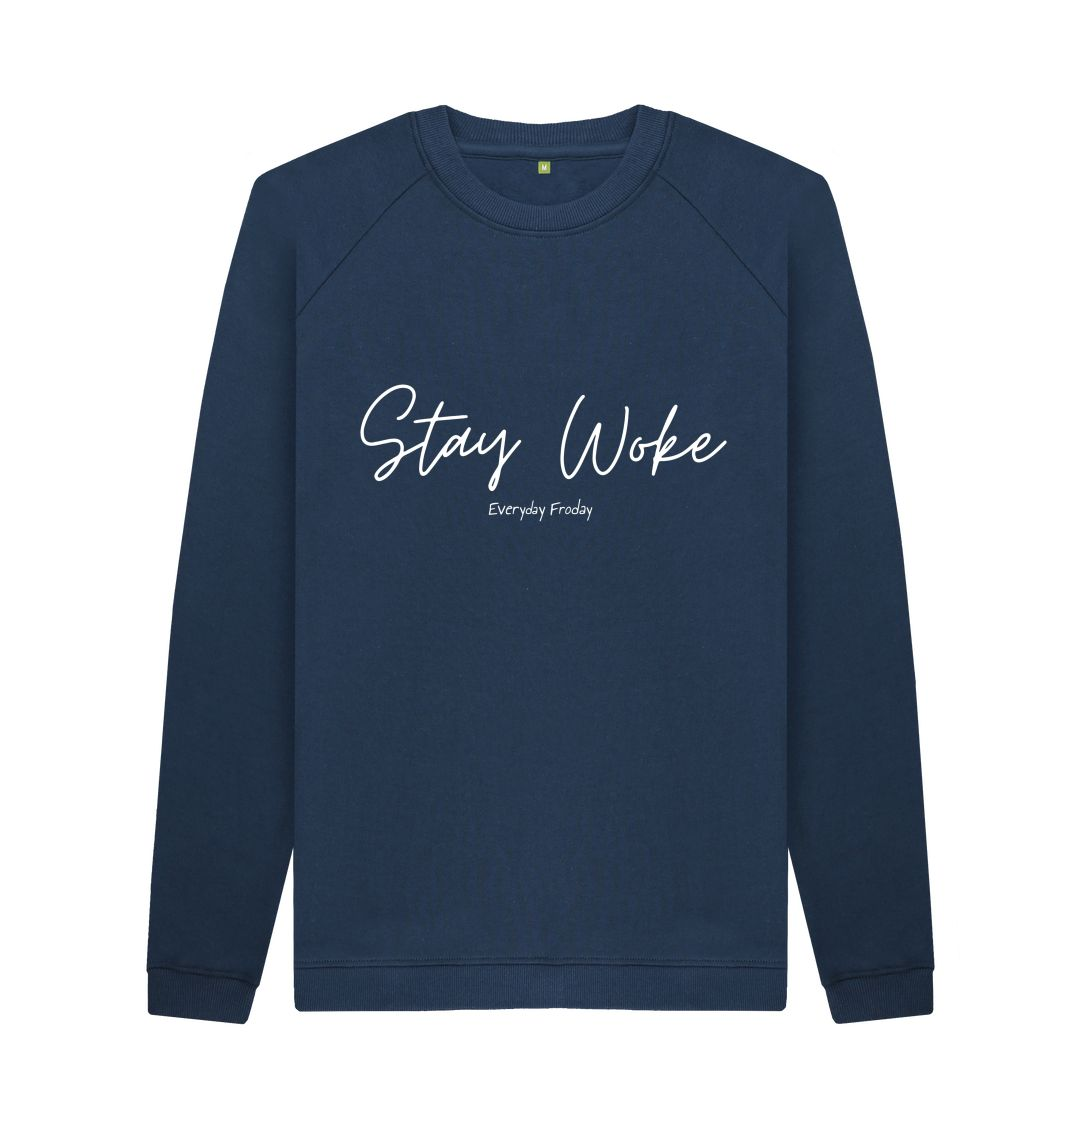 Navy Blue Unisex Sweatshirt | Stay Woke